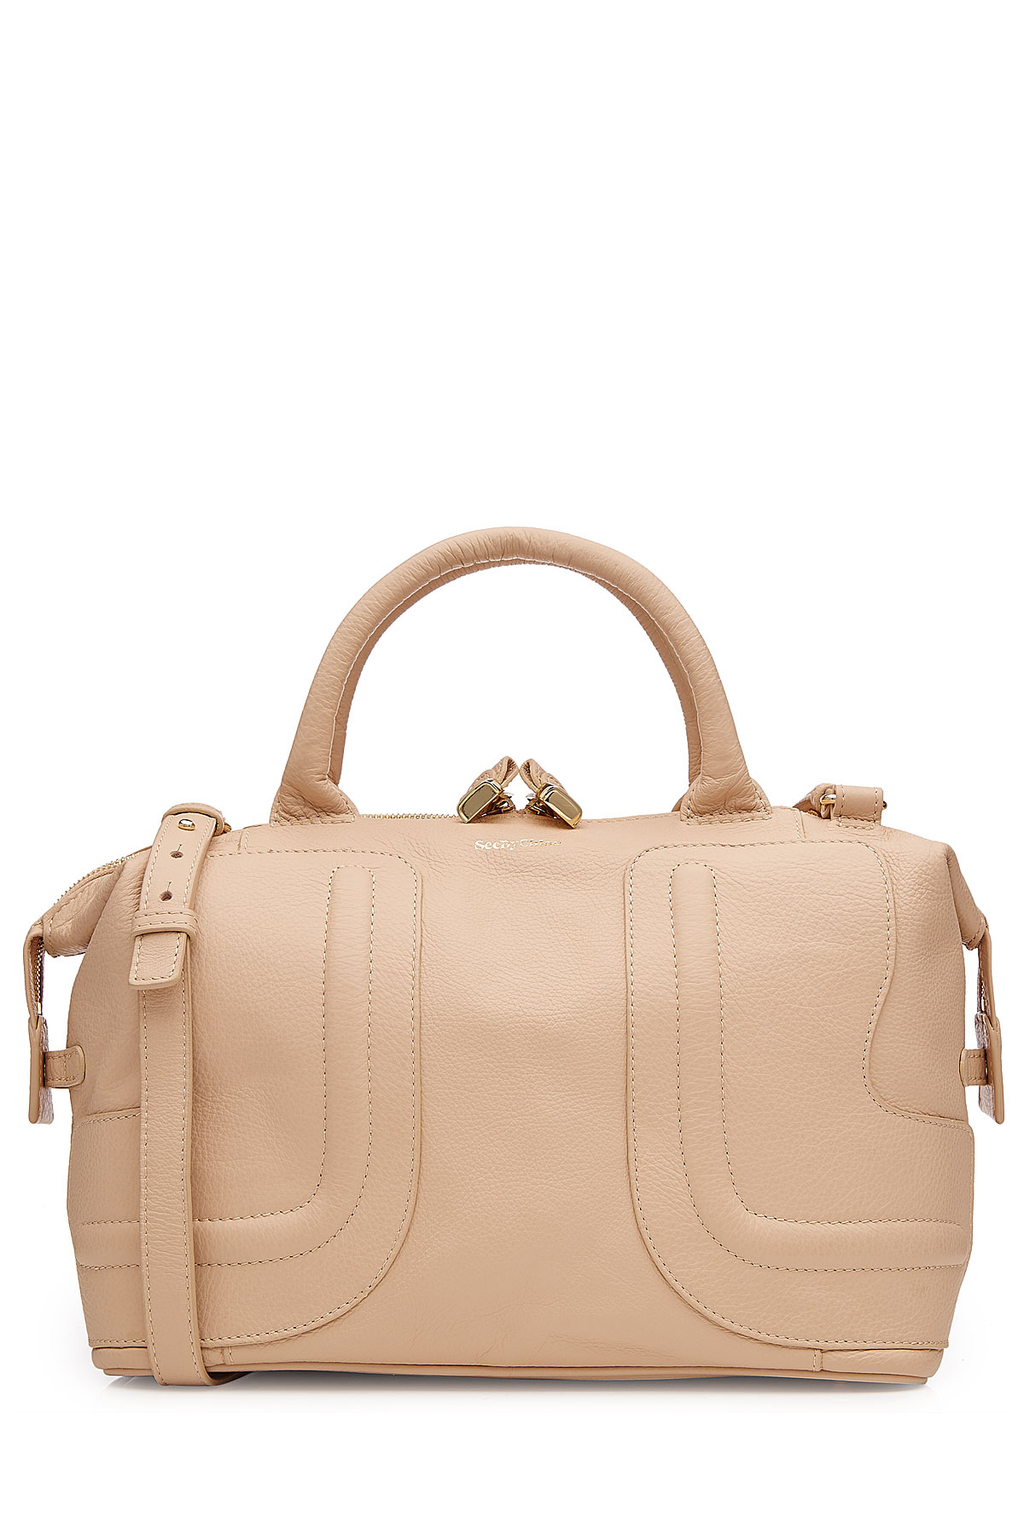 Leather Tote Beige - predominant colour: blush; occasions: casual; type of pattern: standard; style: tote; length: hand carry; size: standard; material: leather; pattern: plain; finish: plain; season: s/s 2016; wardrobe: investment